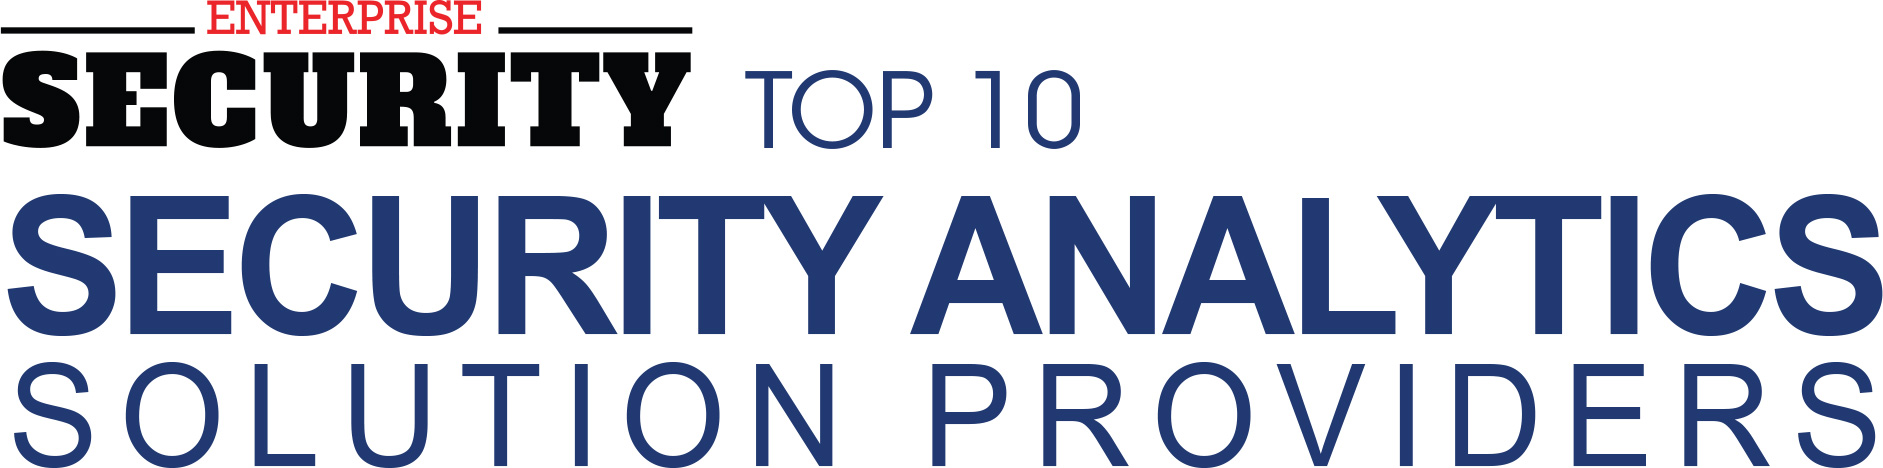 Top Security Analytics companies